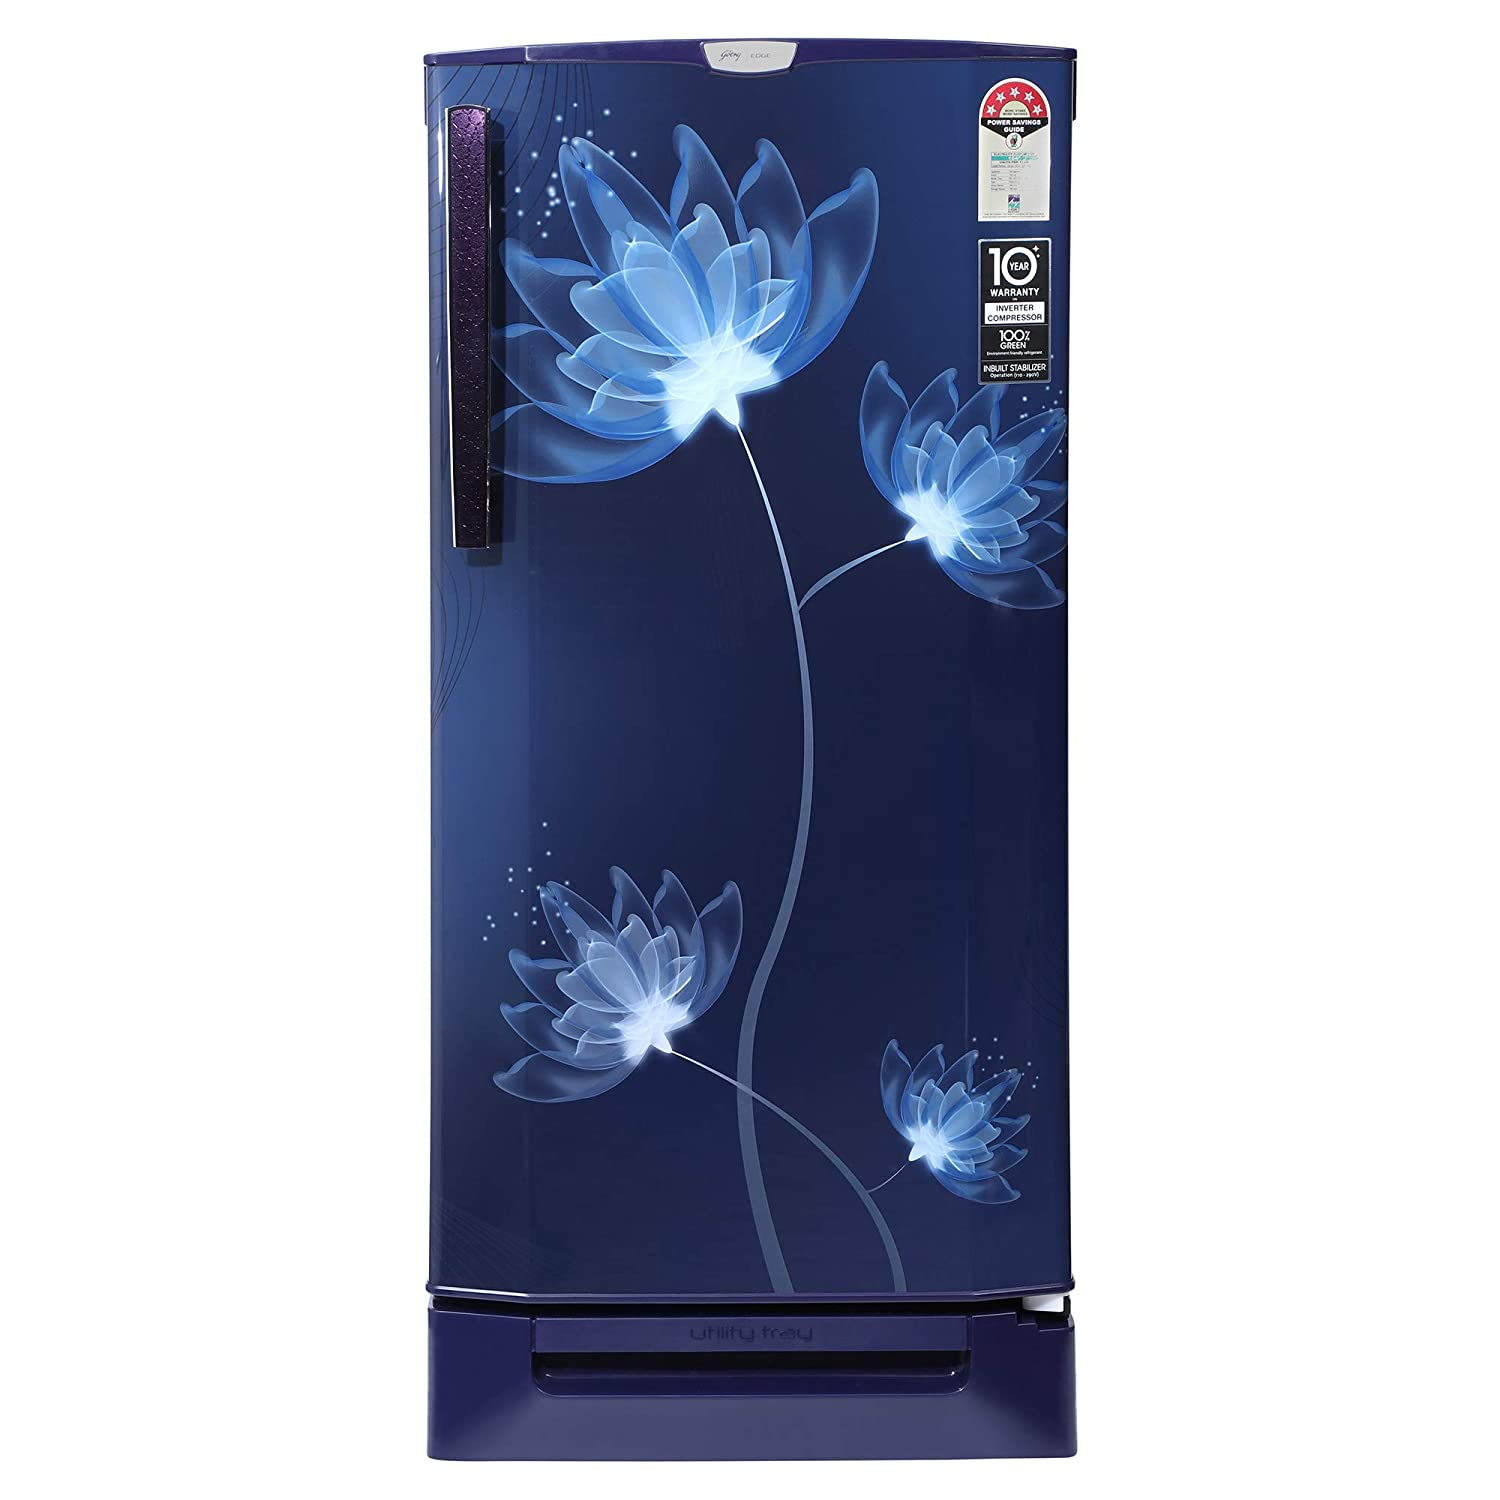 Godrej 190 L 5 Star Inverter Direct-Cool Single Door Refrigerator (RD 1905 PTDI 53 GL BL, Glass Blue, Base stand with drawer, Inverter Compressor)